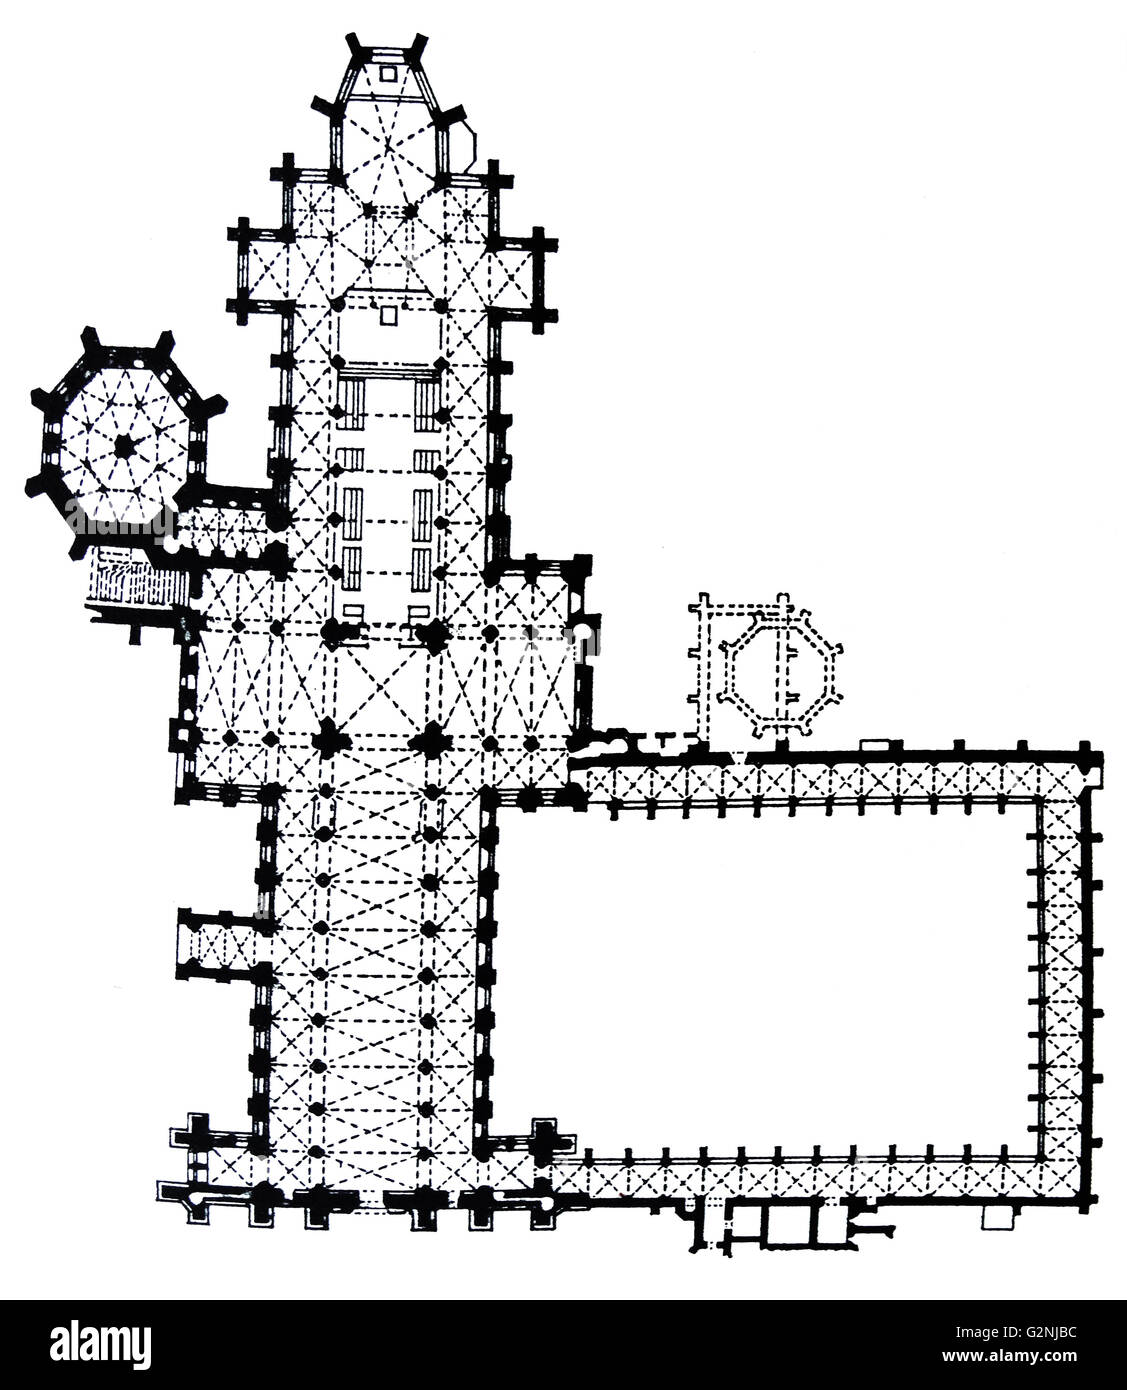 Wells Cathedral Floor Plan Stock Photo: 104966944 - Alamy